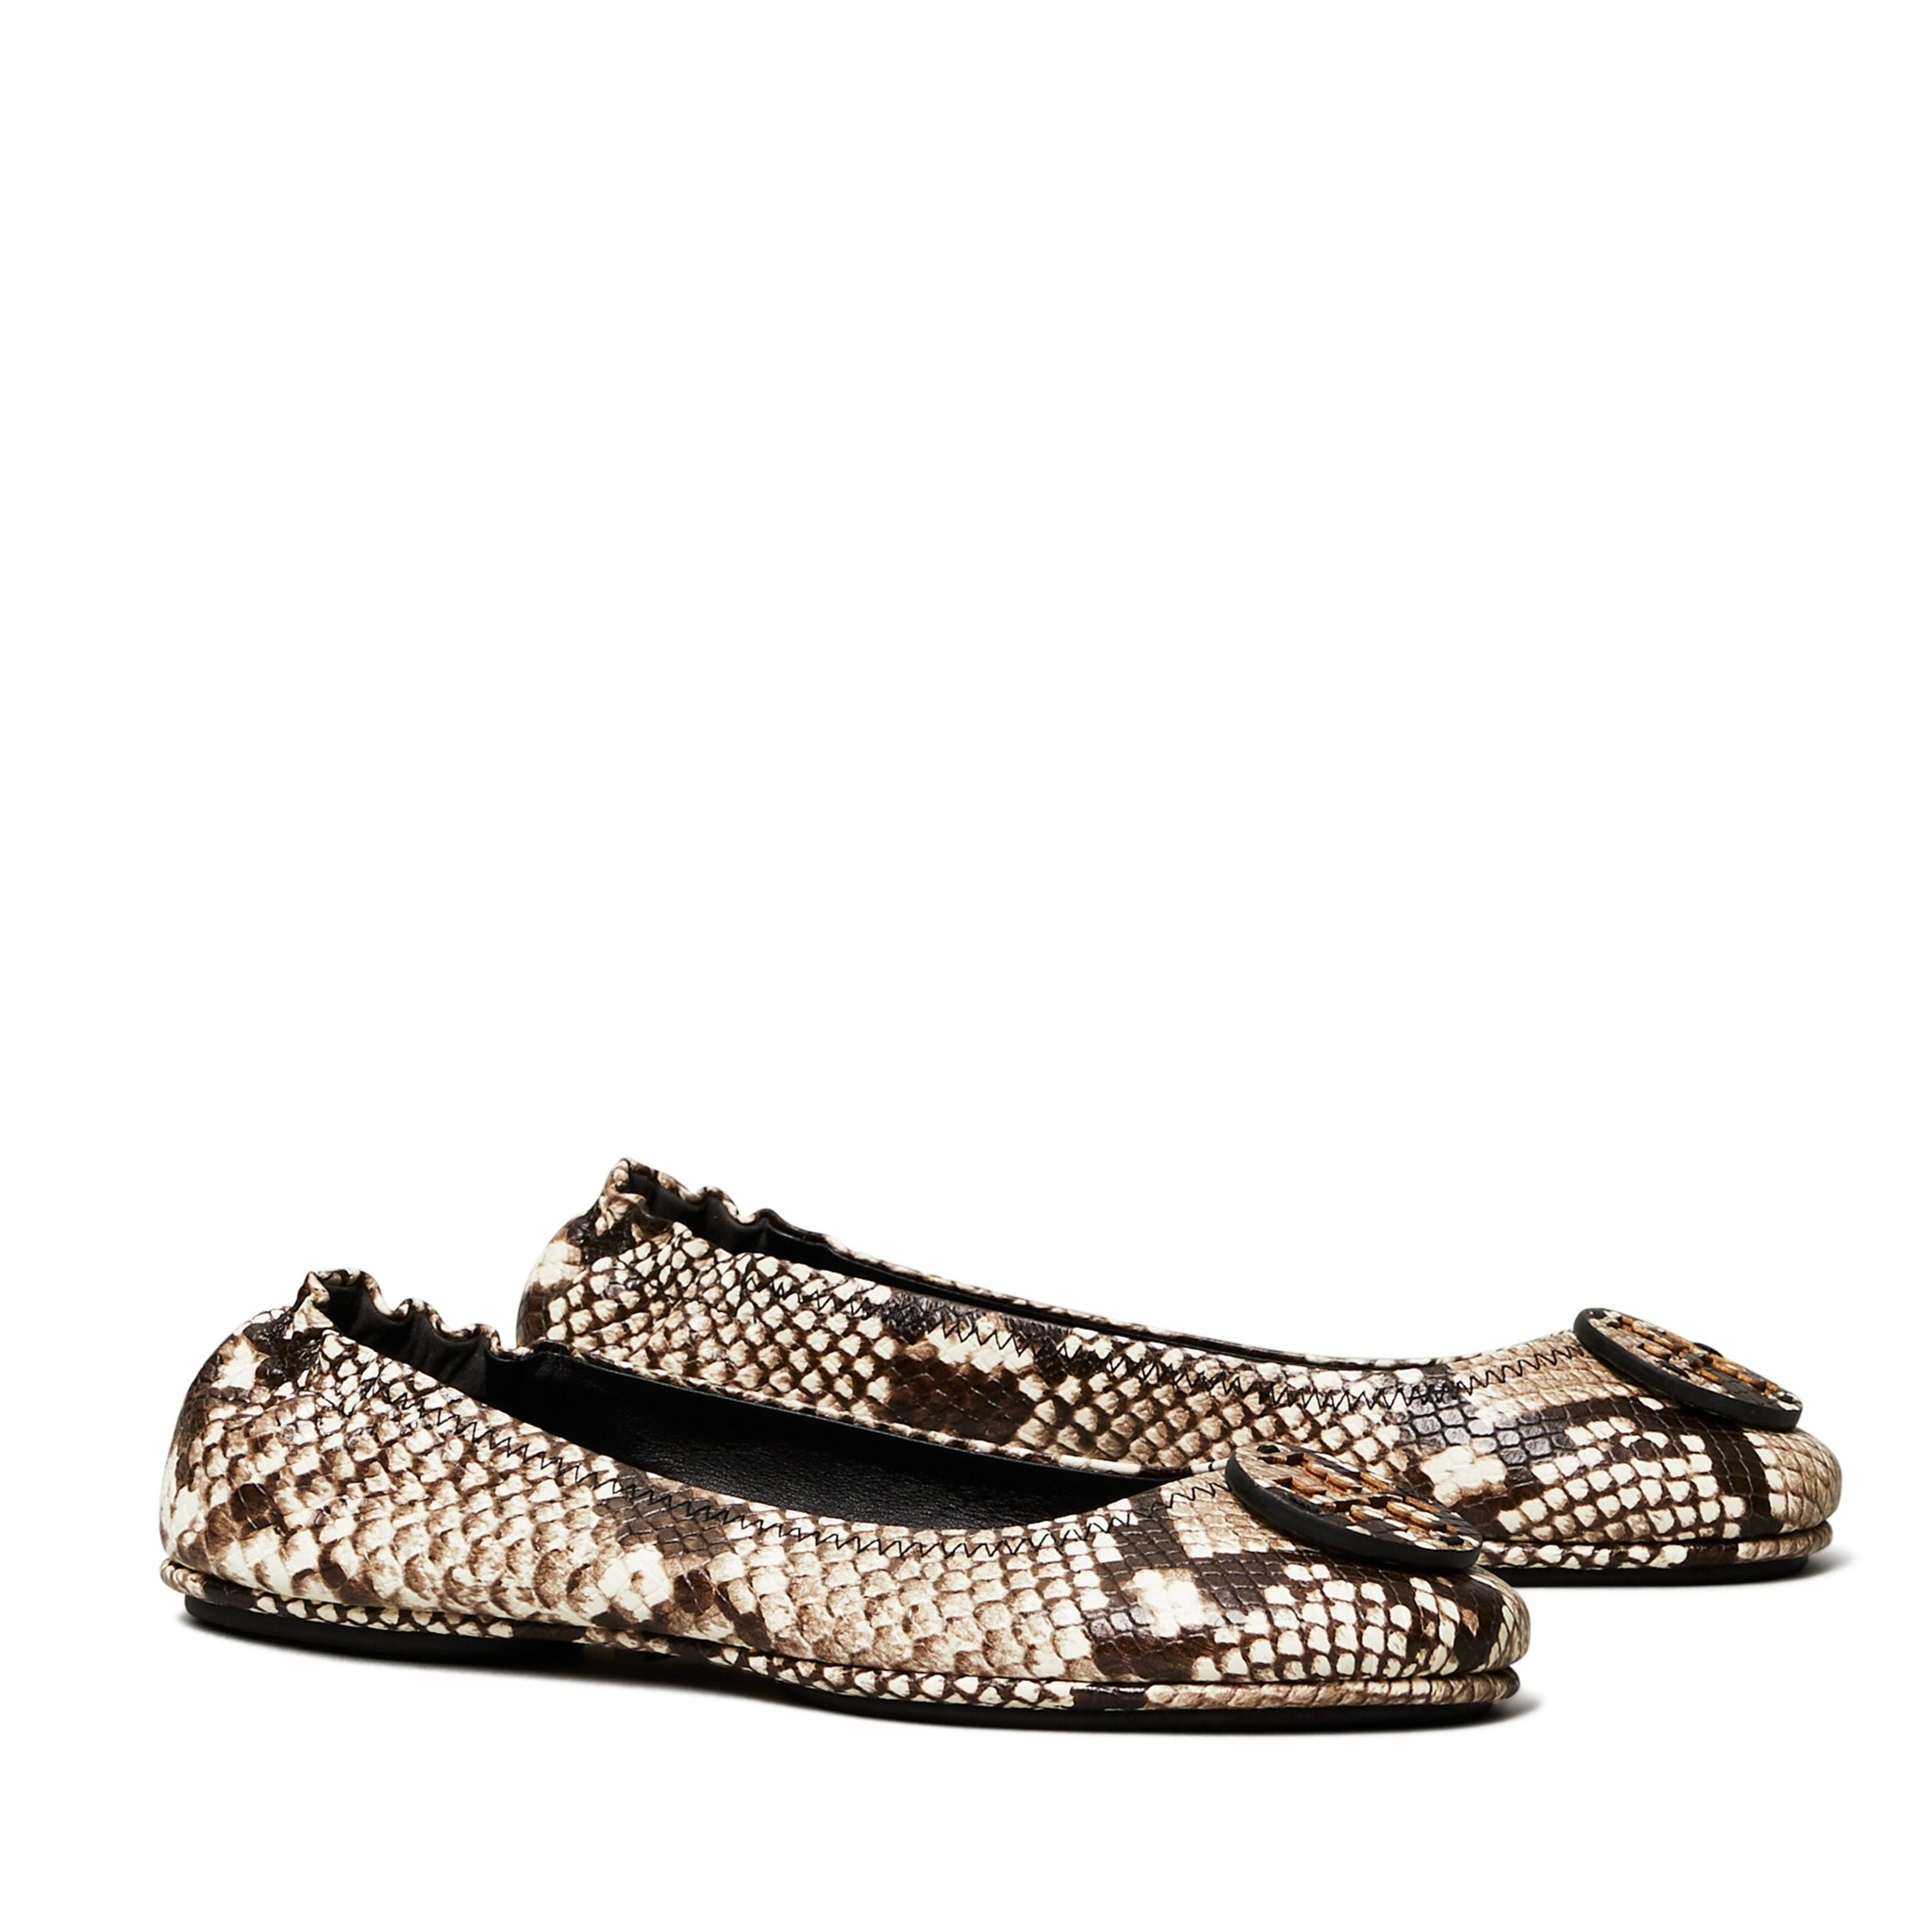 MINNIE TRAVEL BALLET FLAT EMBOSSED LEATHER - WARM ROCCIA